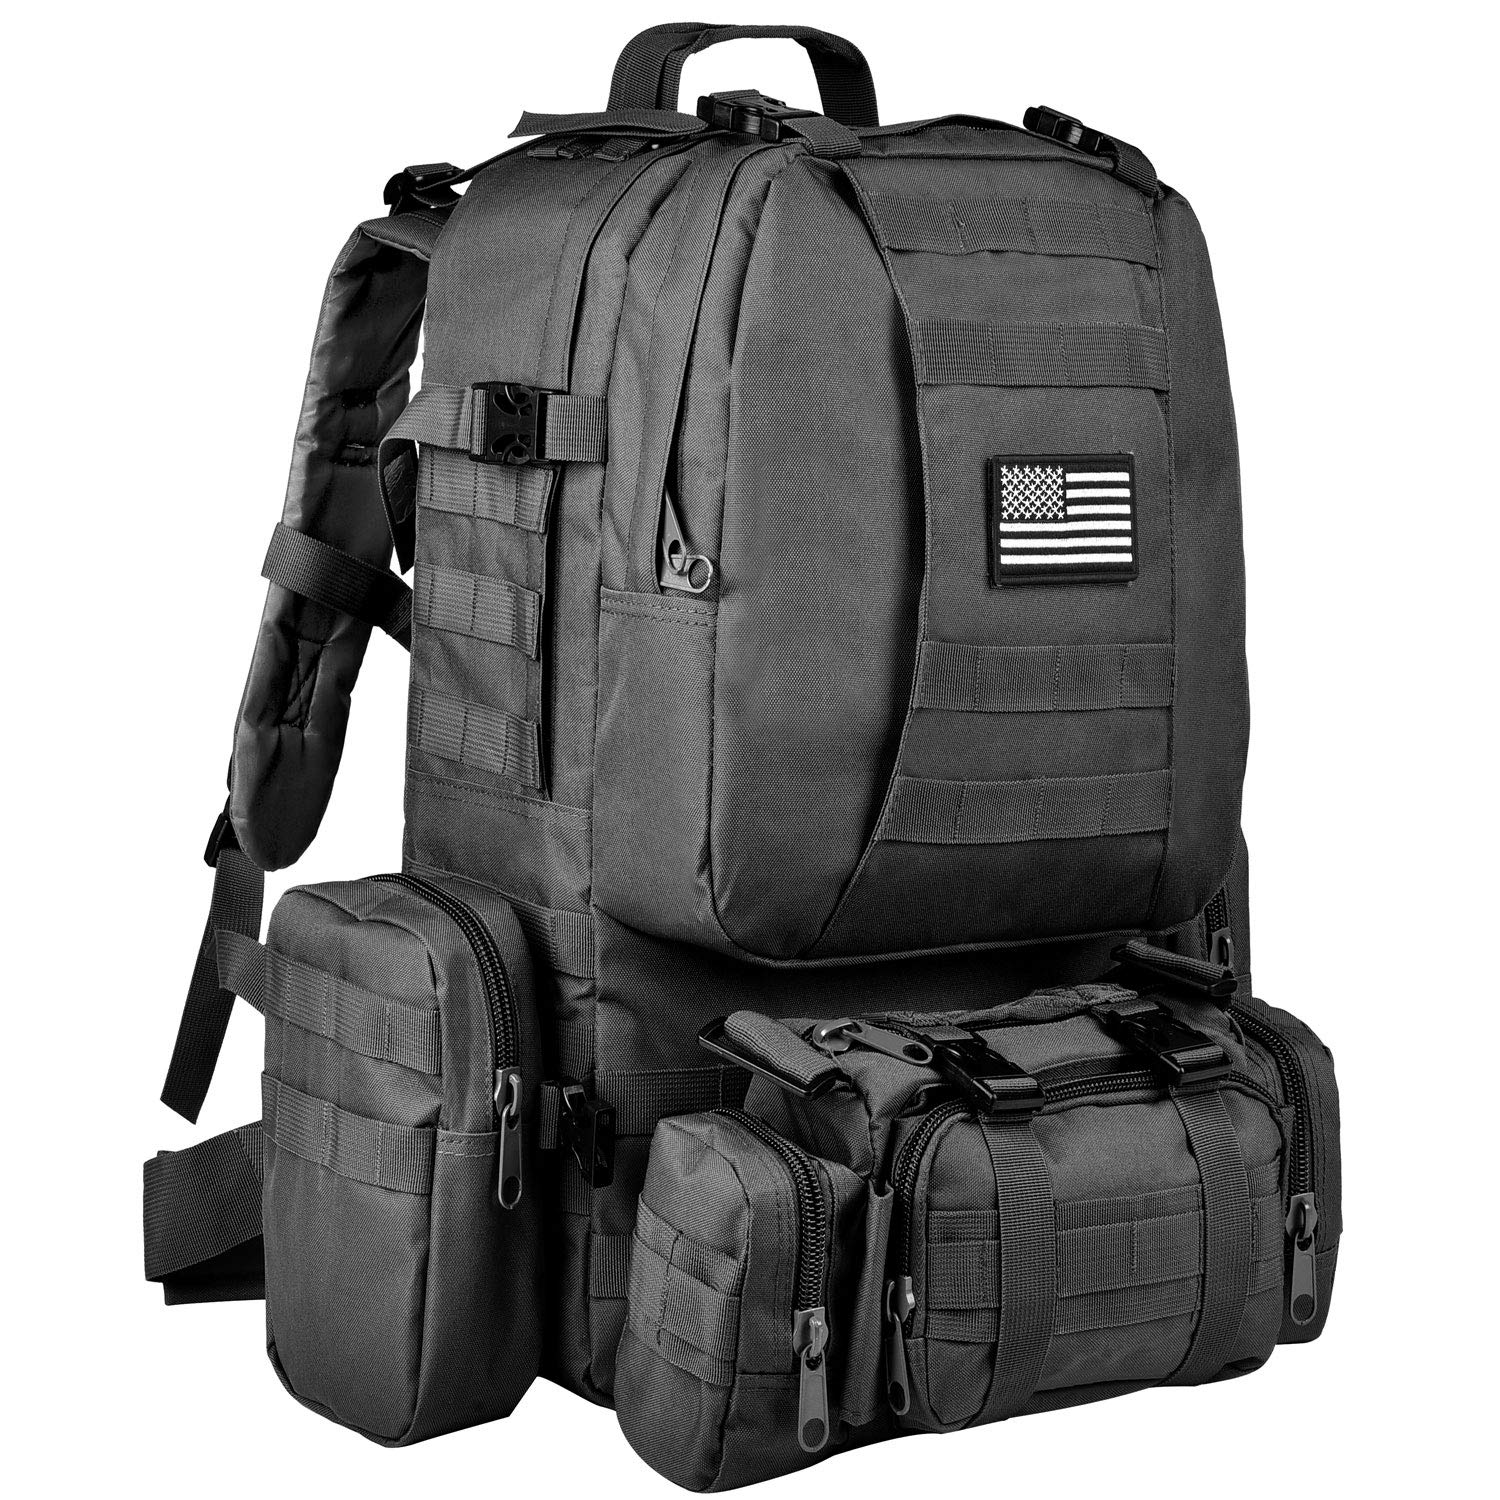 CVLIFE Tactical Military Backpack 60L Built-up Army Rucksacks Outdoor 3 Day Assault Pack Combat Molle Backpack for Hunting Hiking Fishing with Flag Patch Black by CVLIFE (Image #1)